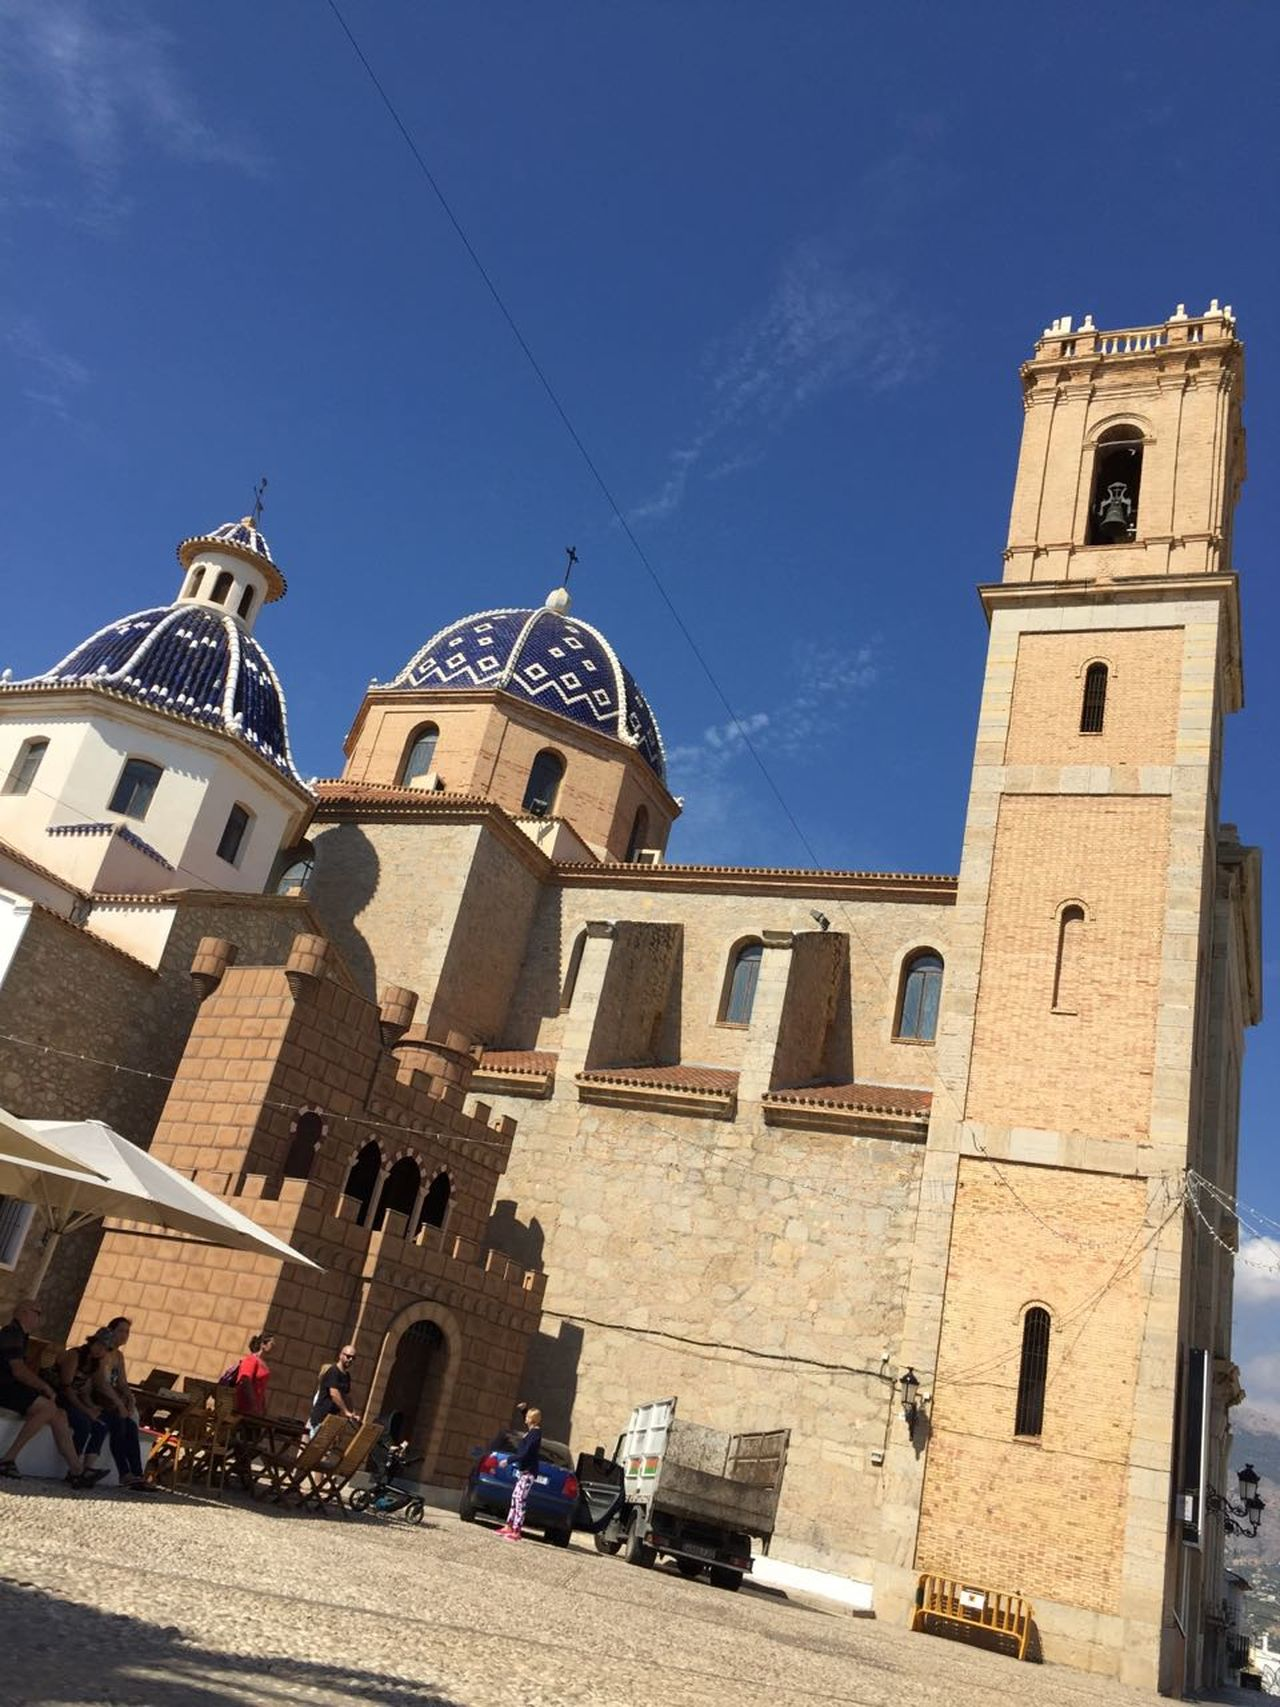 City Architecture Tourism Lookingup Sky Place Of Interest 💒🙋💒🌞 No Edit/no Filter Low Angle View Travel Charch Vacations History Place Altea, Spain 💒💎🏡🚶🌞🙋